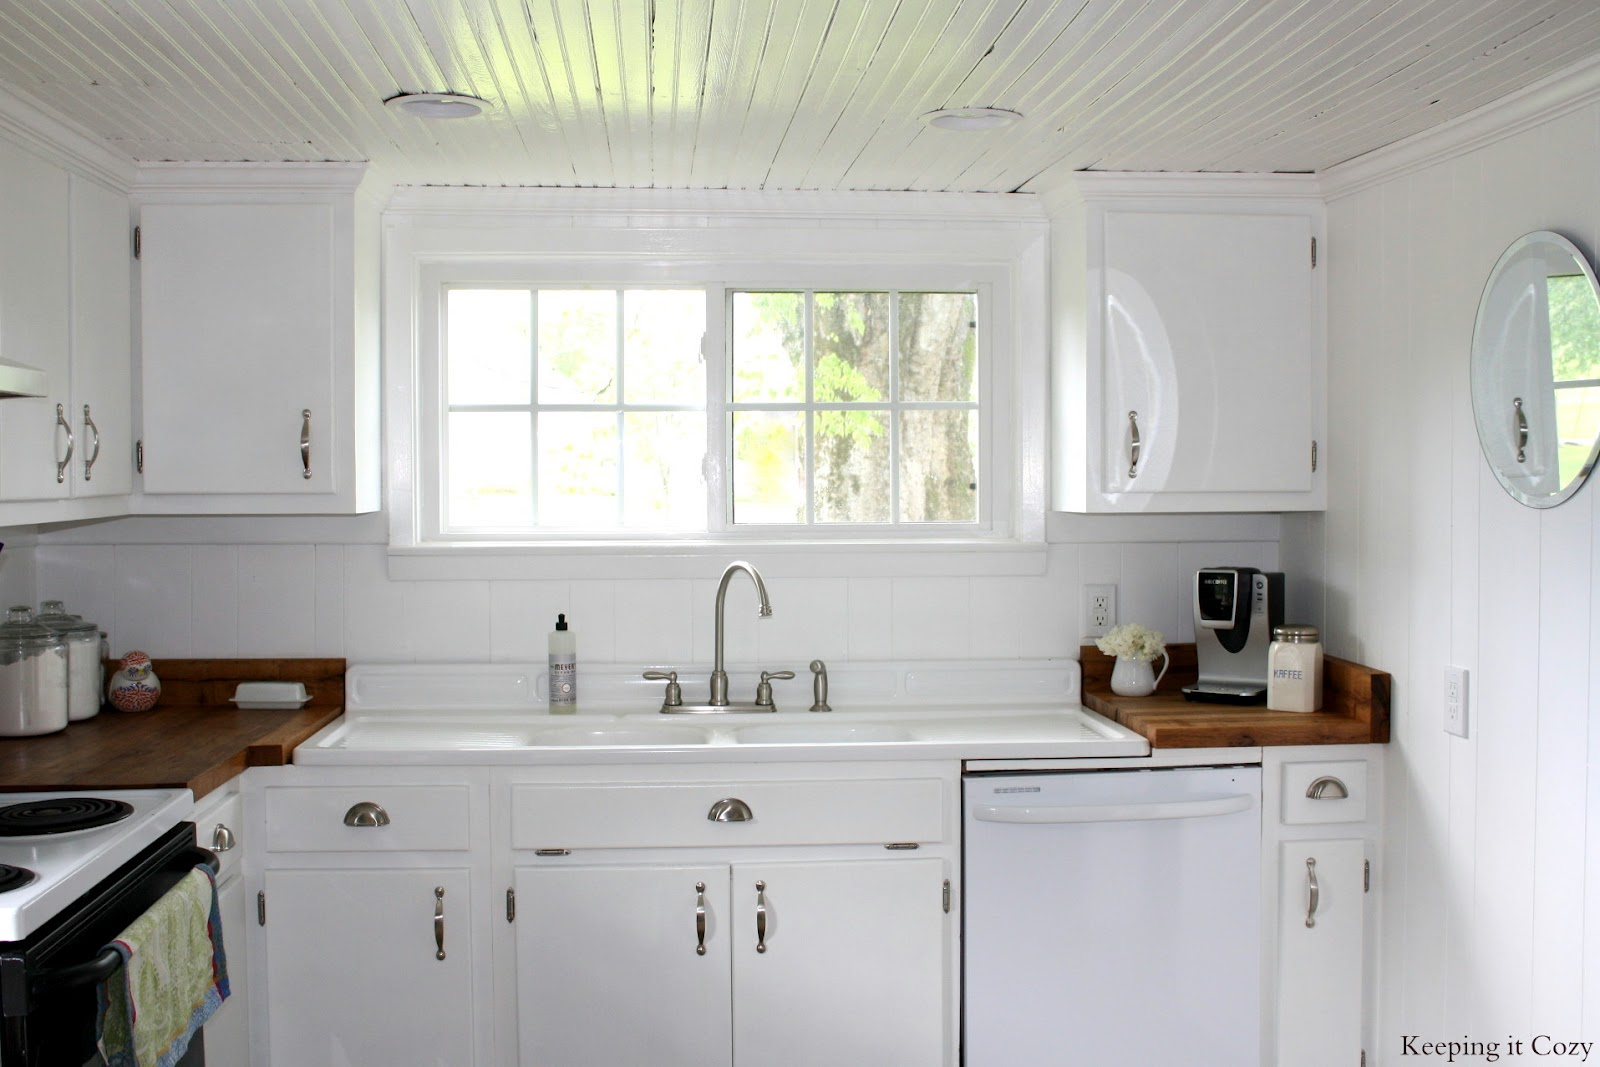 Keeping It Cozy: The Story of a Country Kitchen